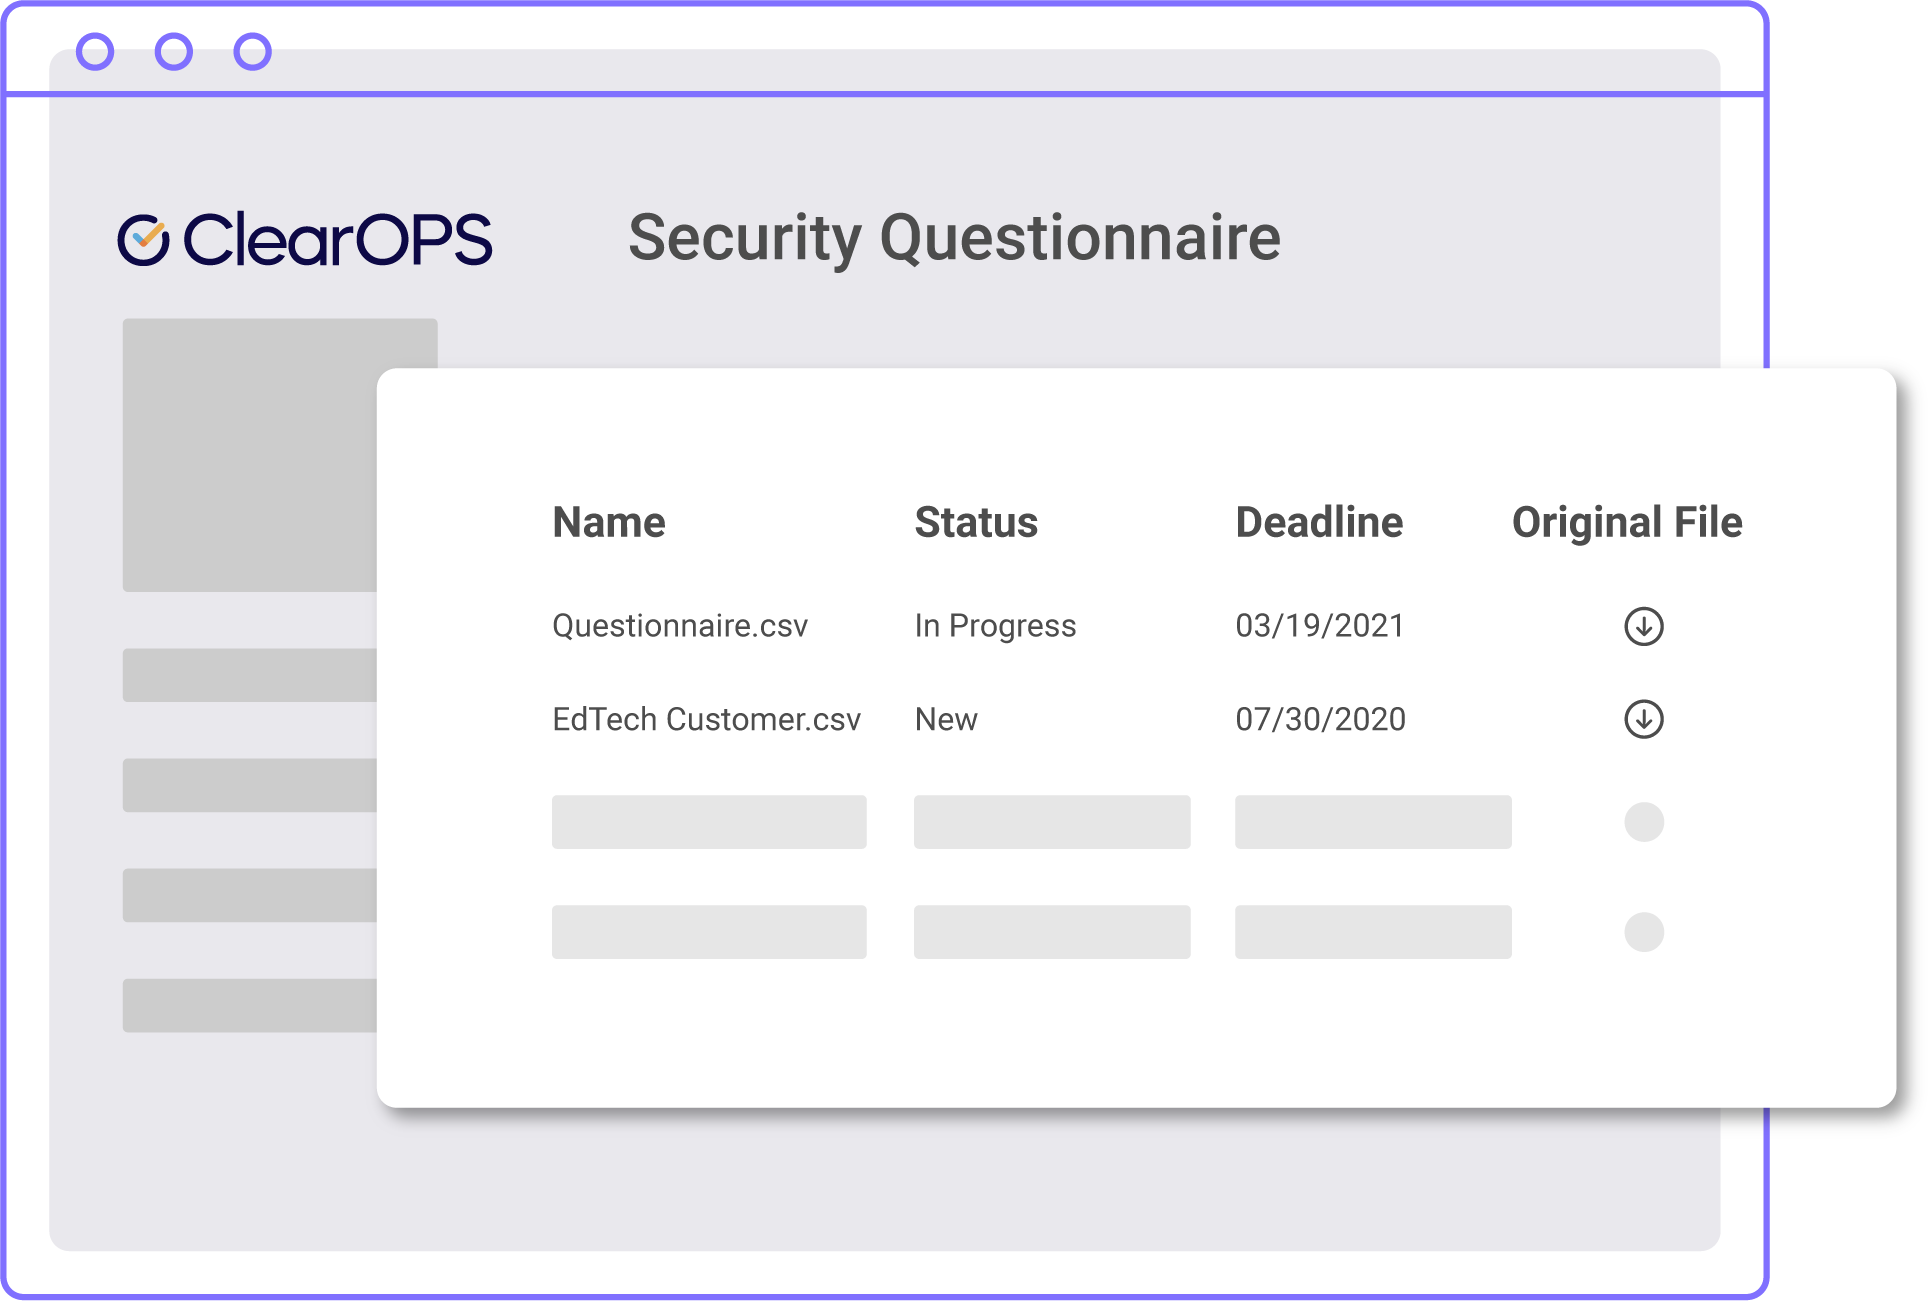 A picture of the ClearOPS system for answering security questionnaires.